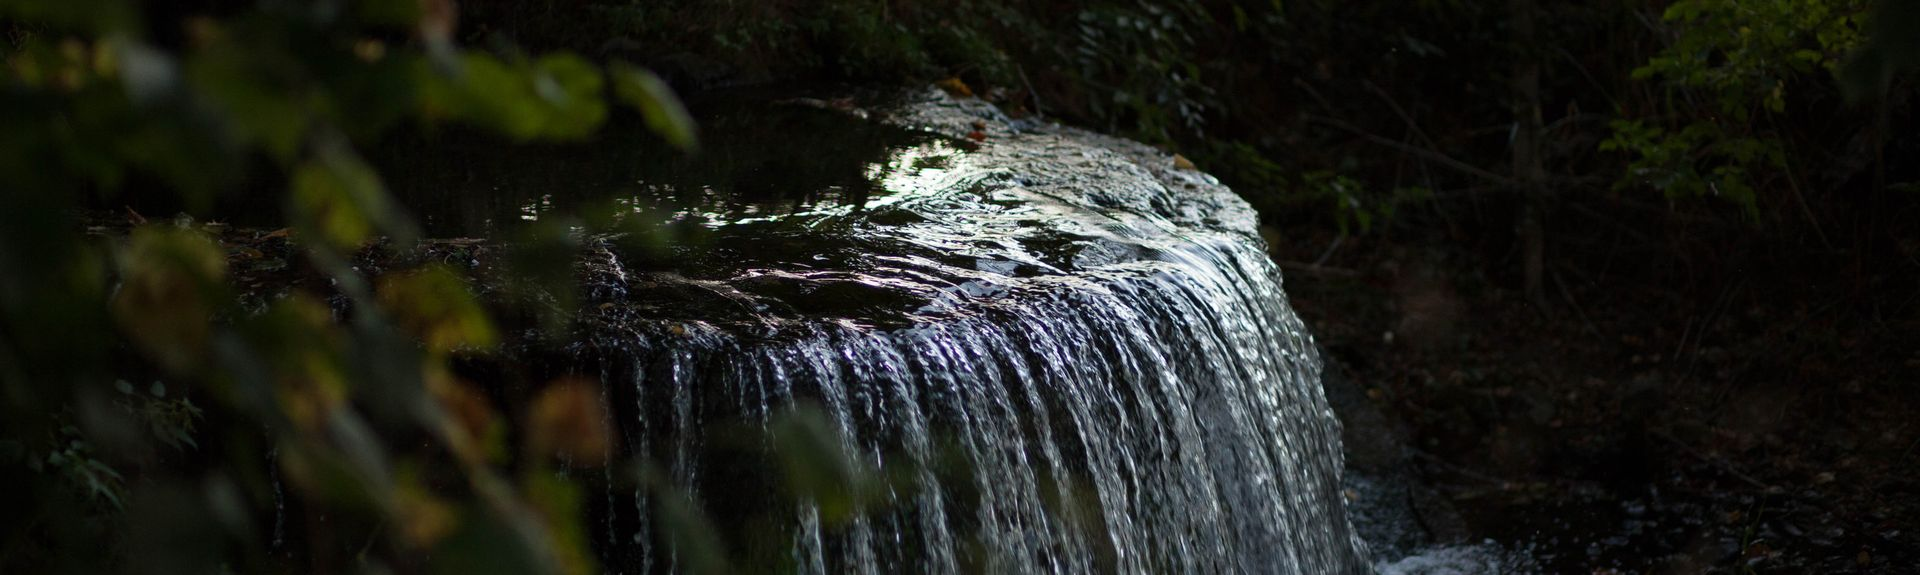 Les Essarts, Normandy, France